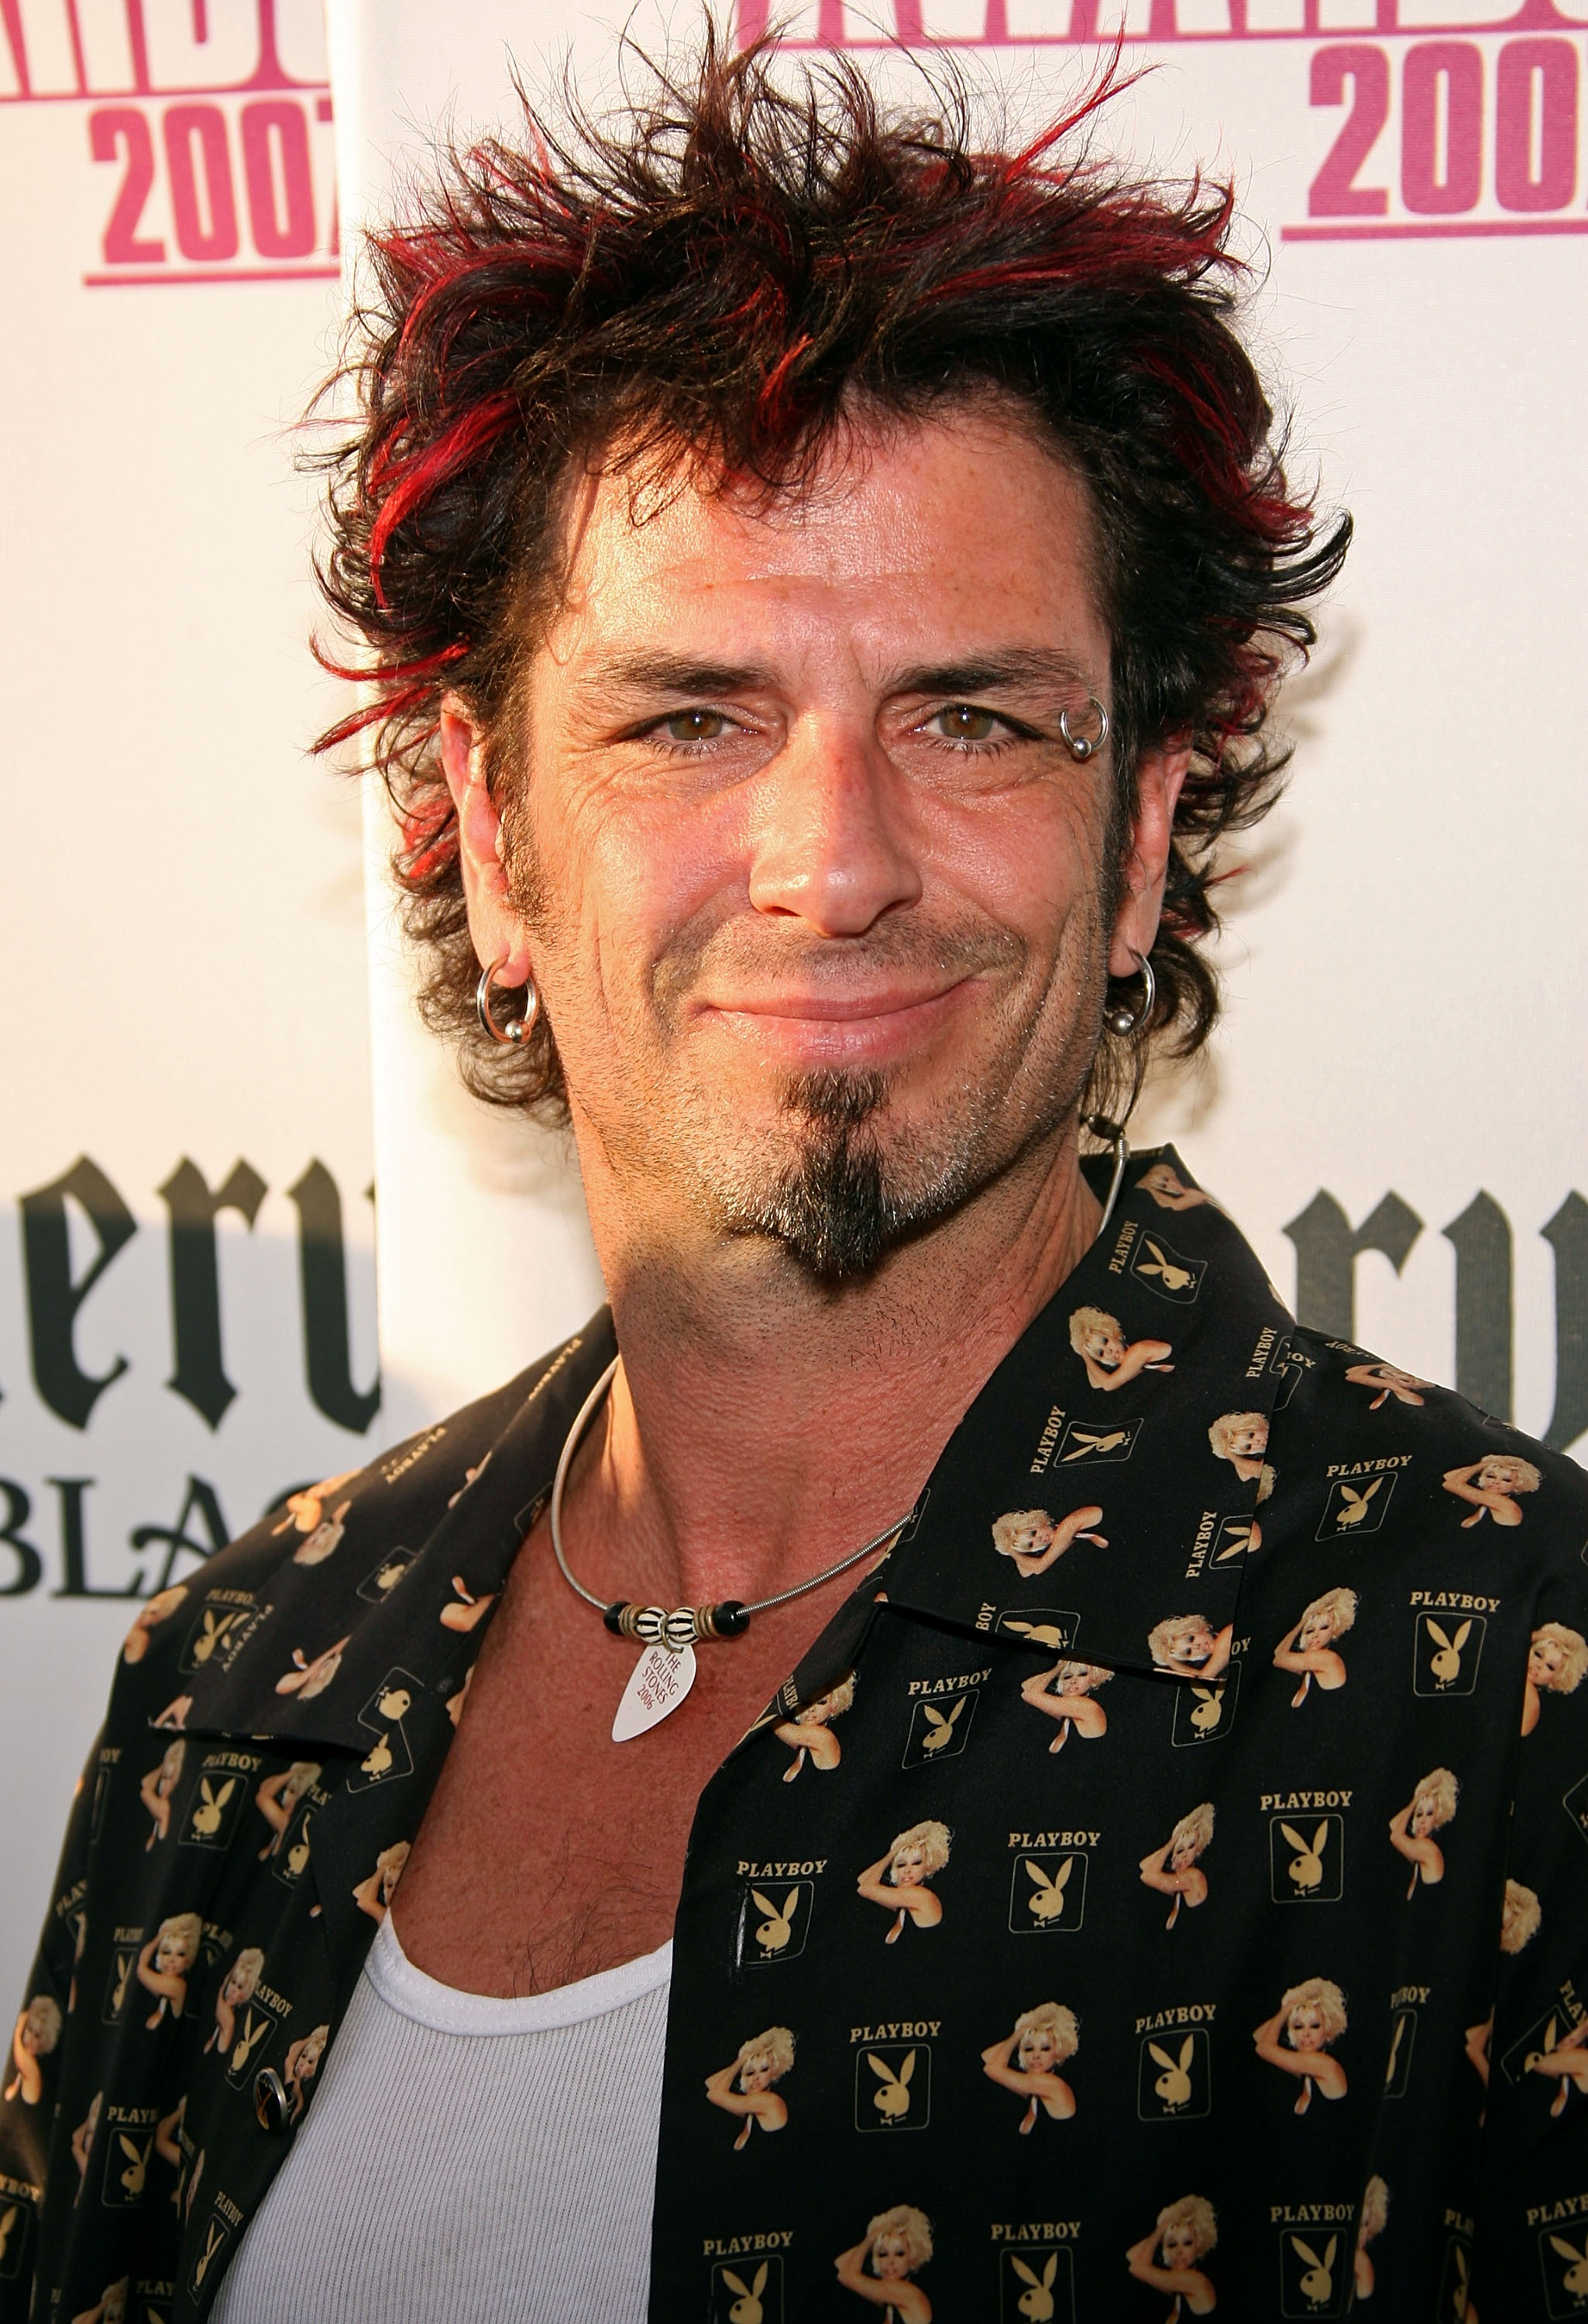 evil dick big brother Evil Dick Donato --Big brother winner season 8 | See more about Big Brother  Winners, Big Brothers and Brother.